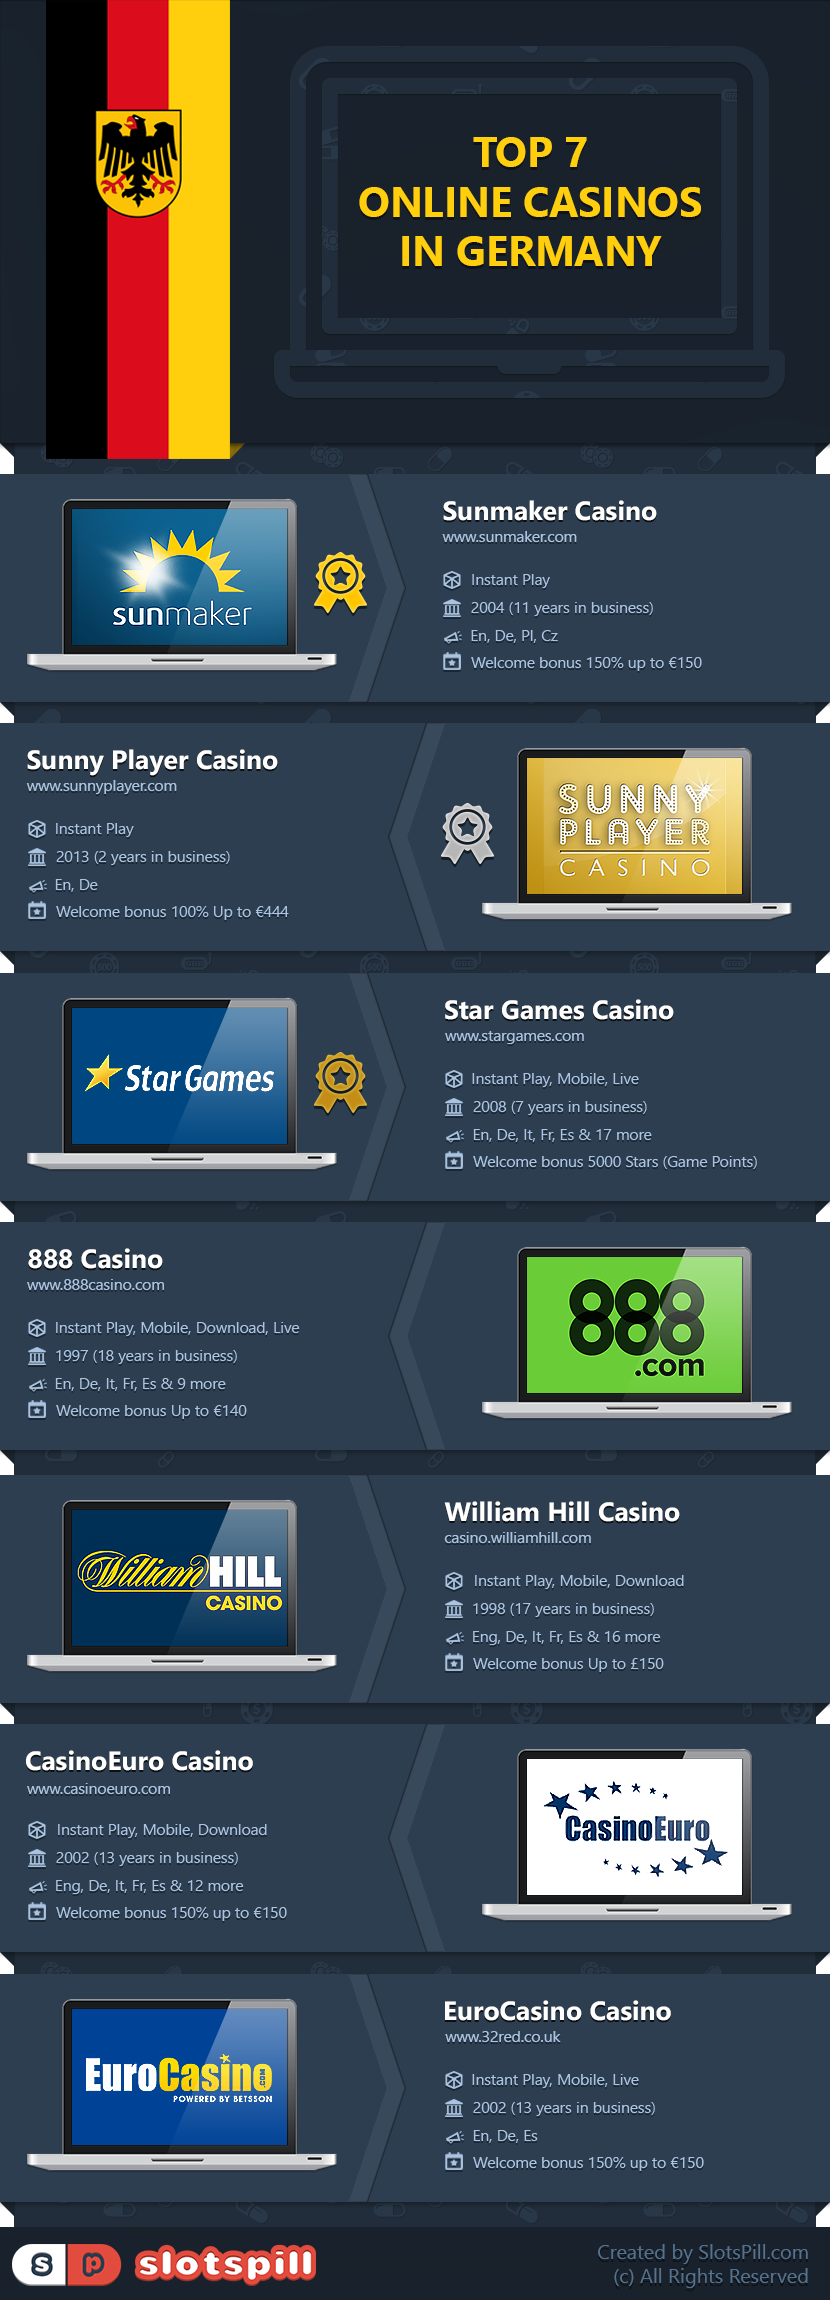 Top 7 Online Casinos for German Players